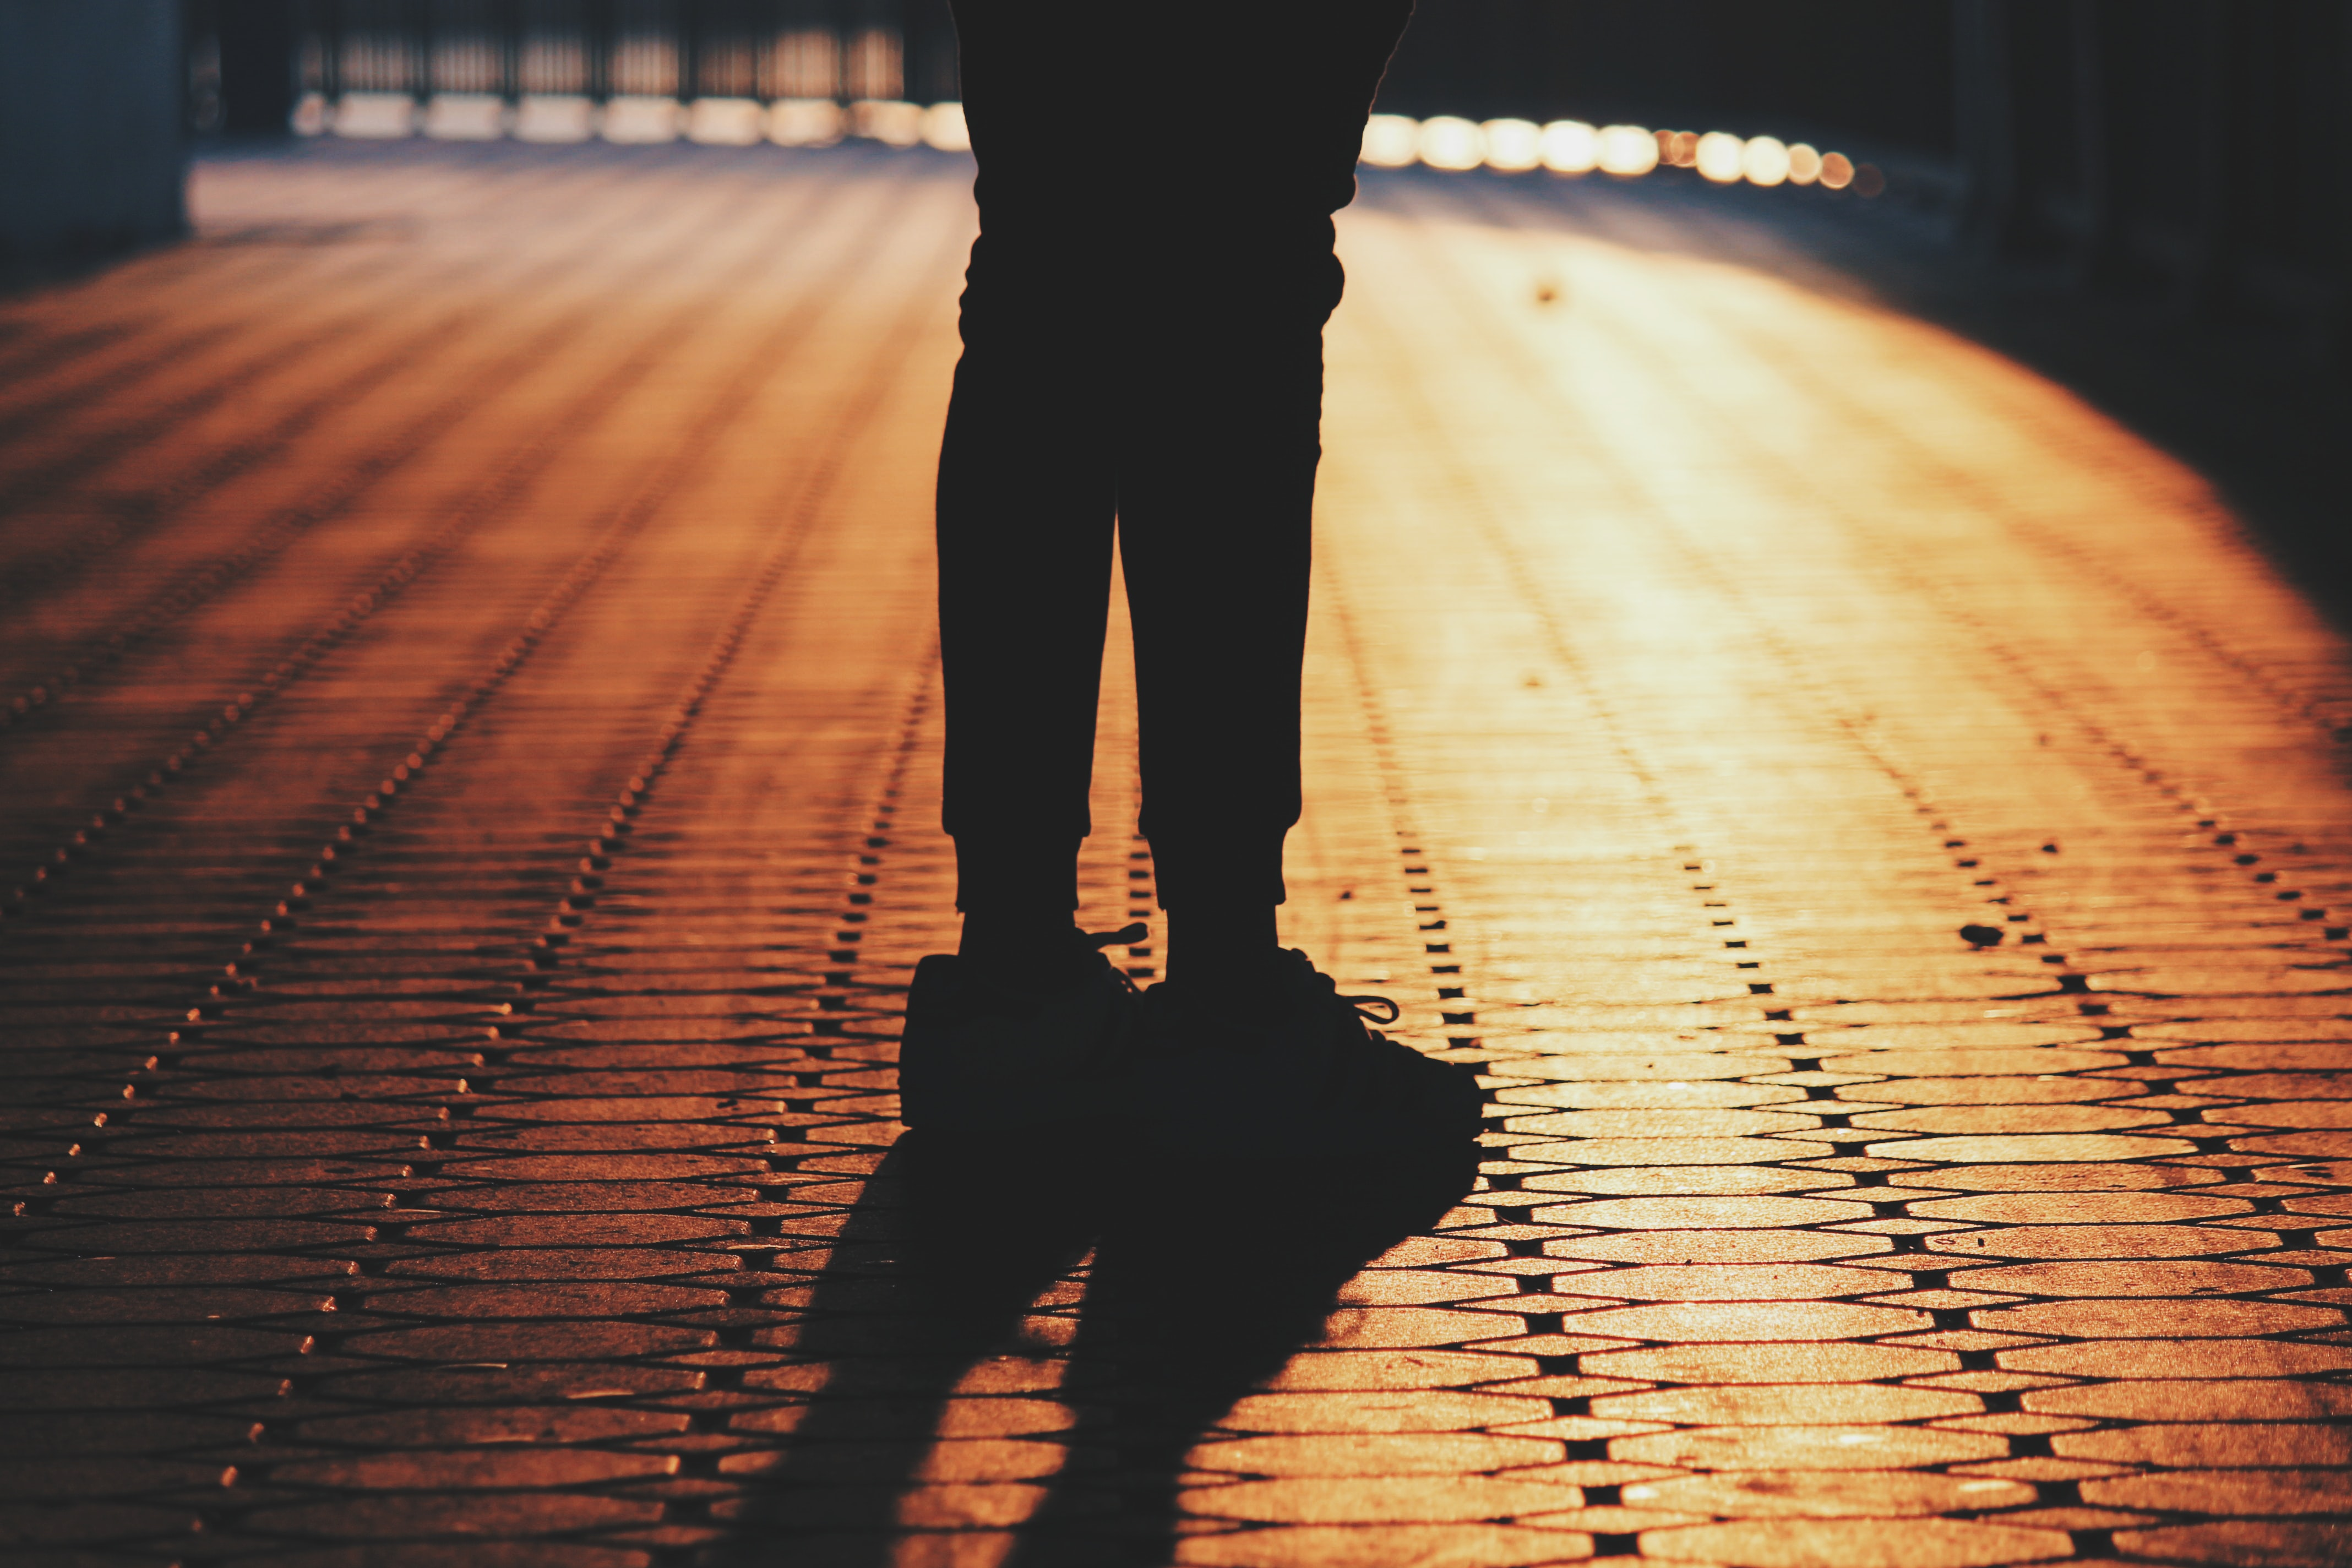 silhouette of man standing on concrete pavement